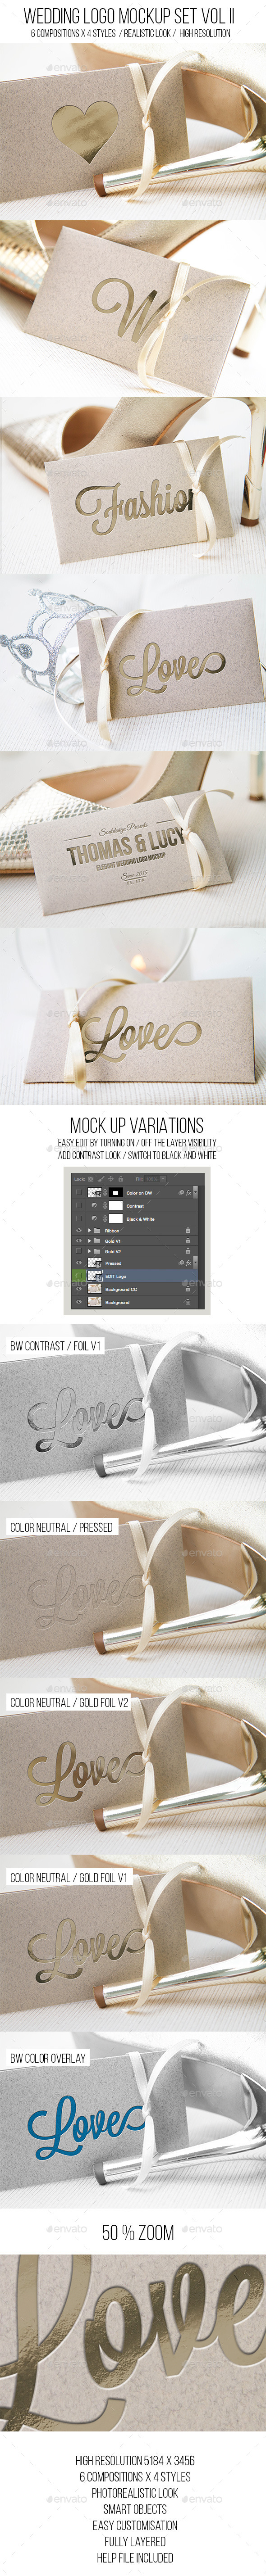 GraphicRiver Wedding Logo Mockup Set Vol II 11555704